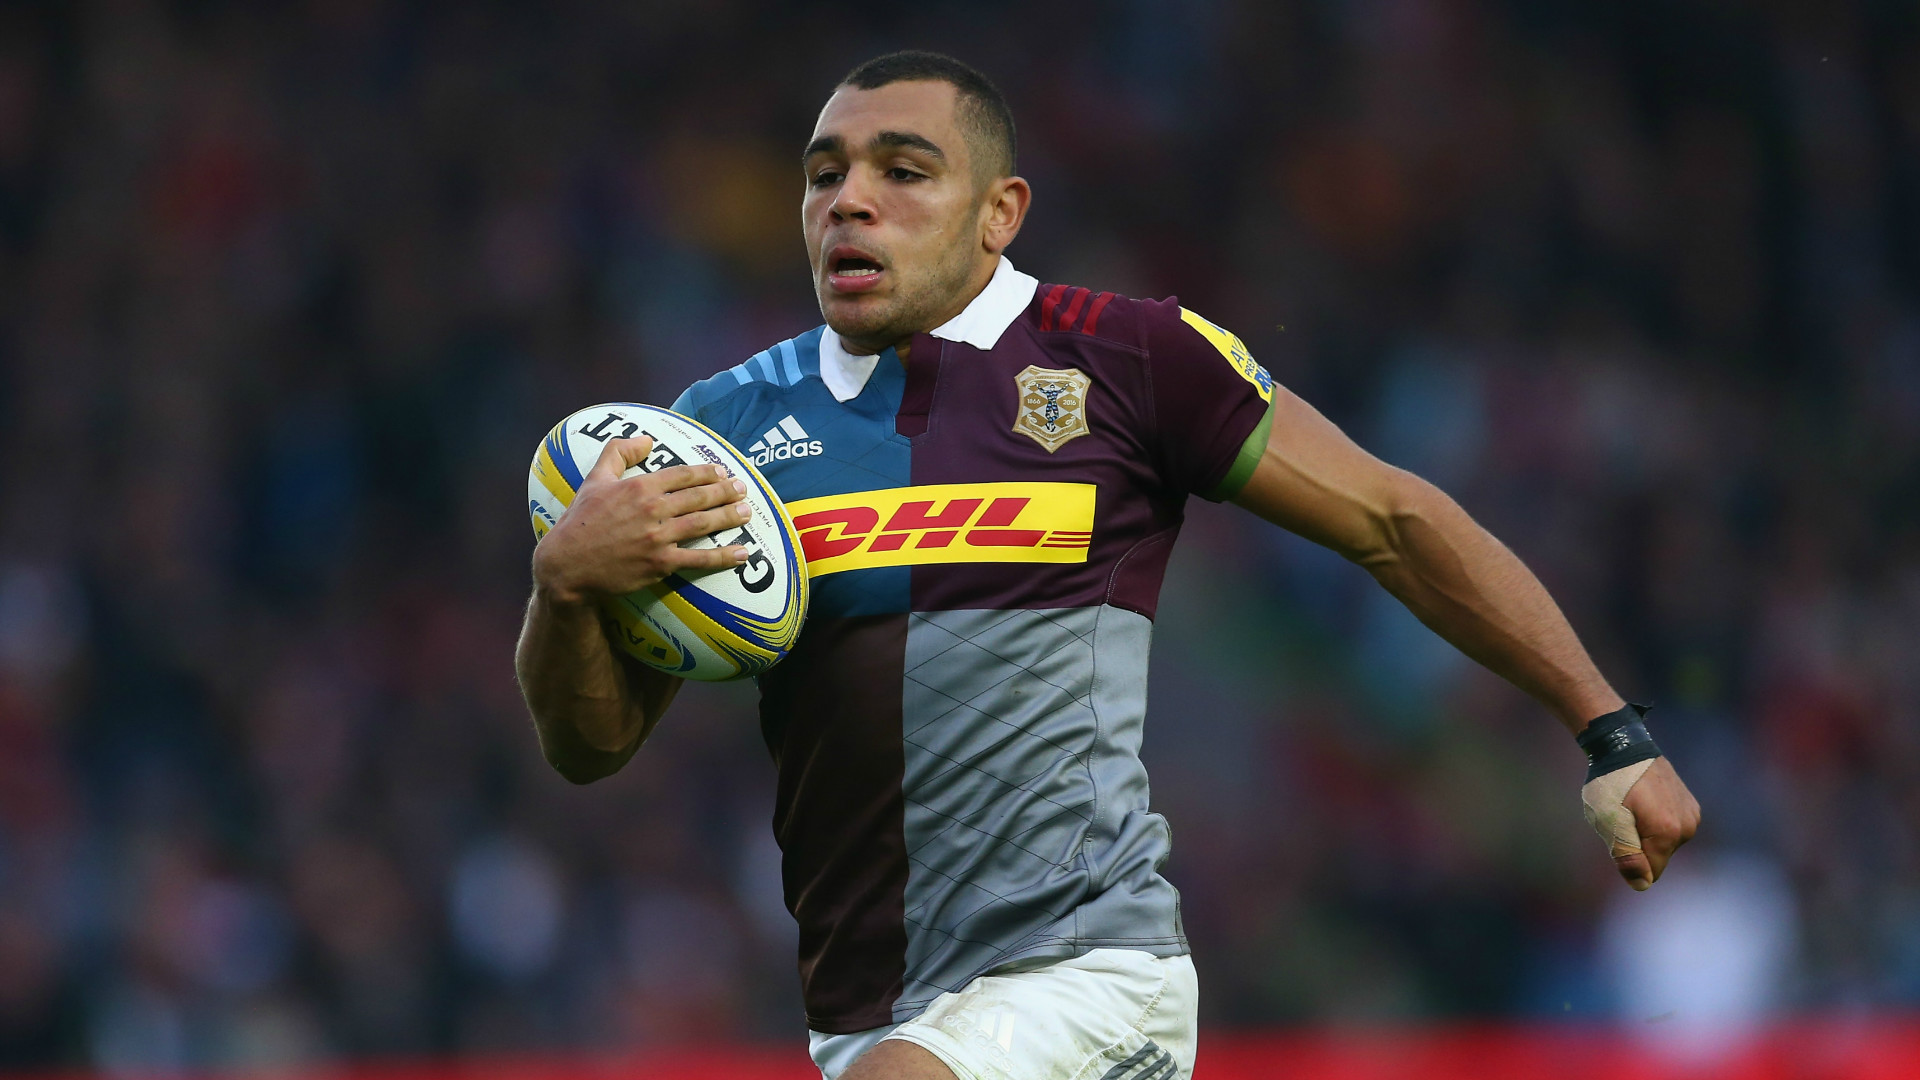 Joe Marchant in action for Harlequins